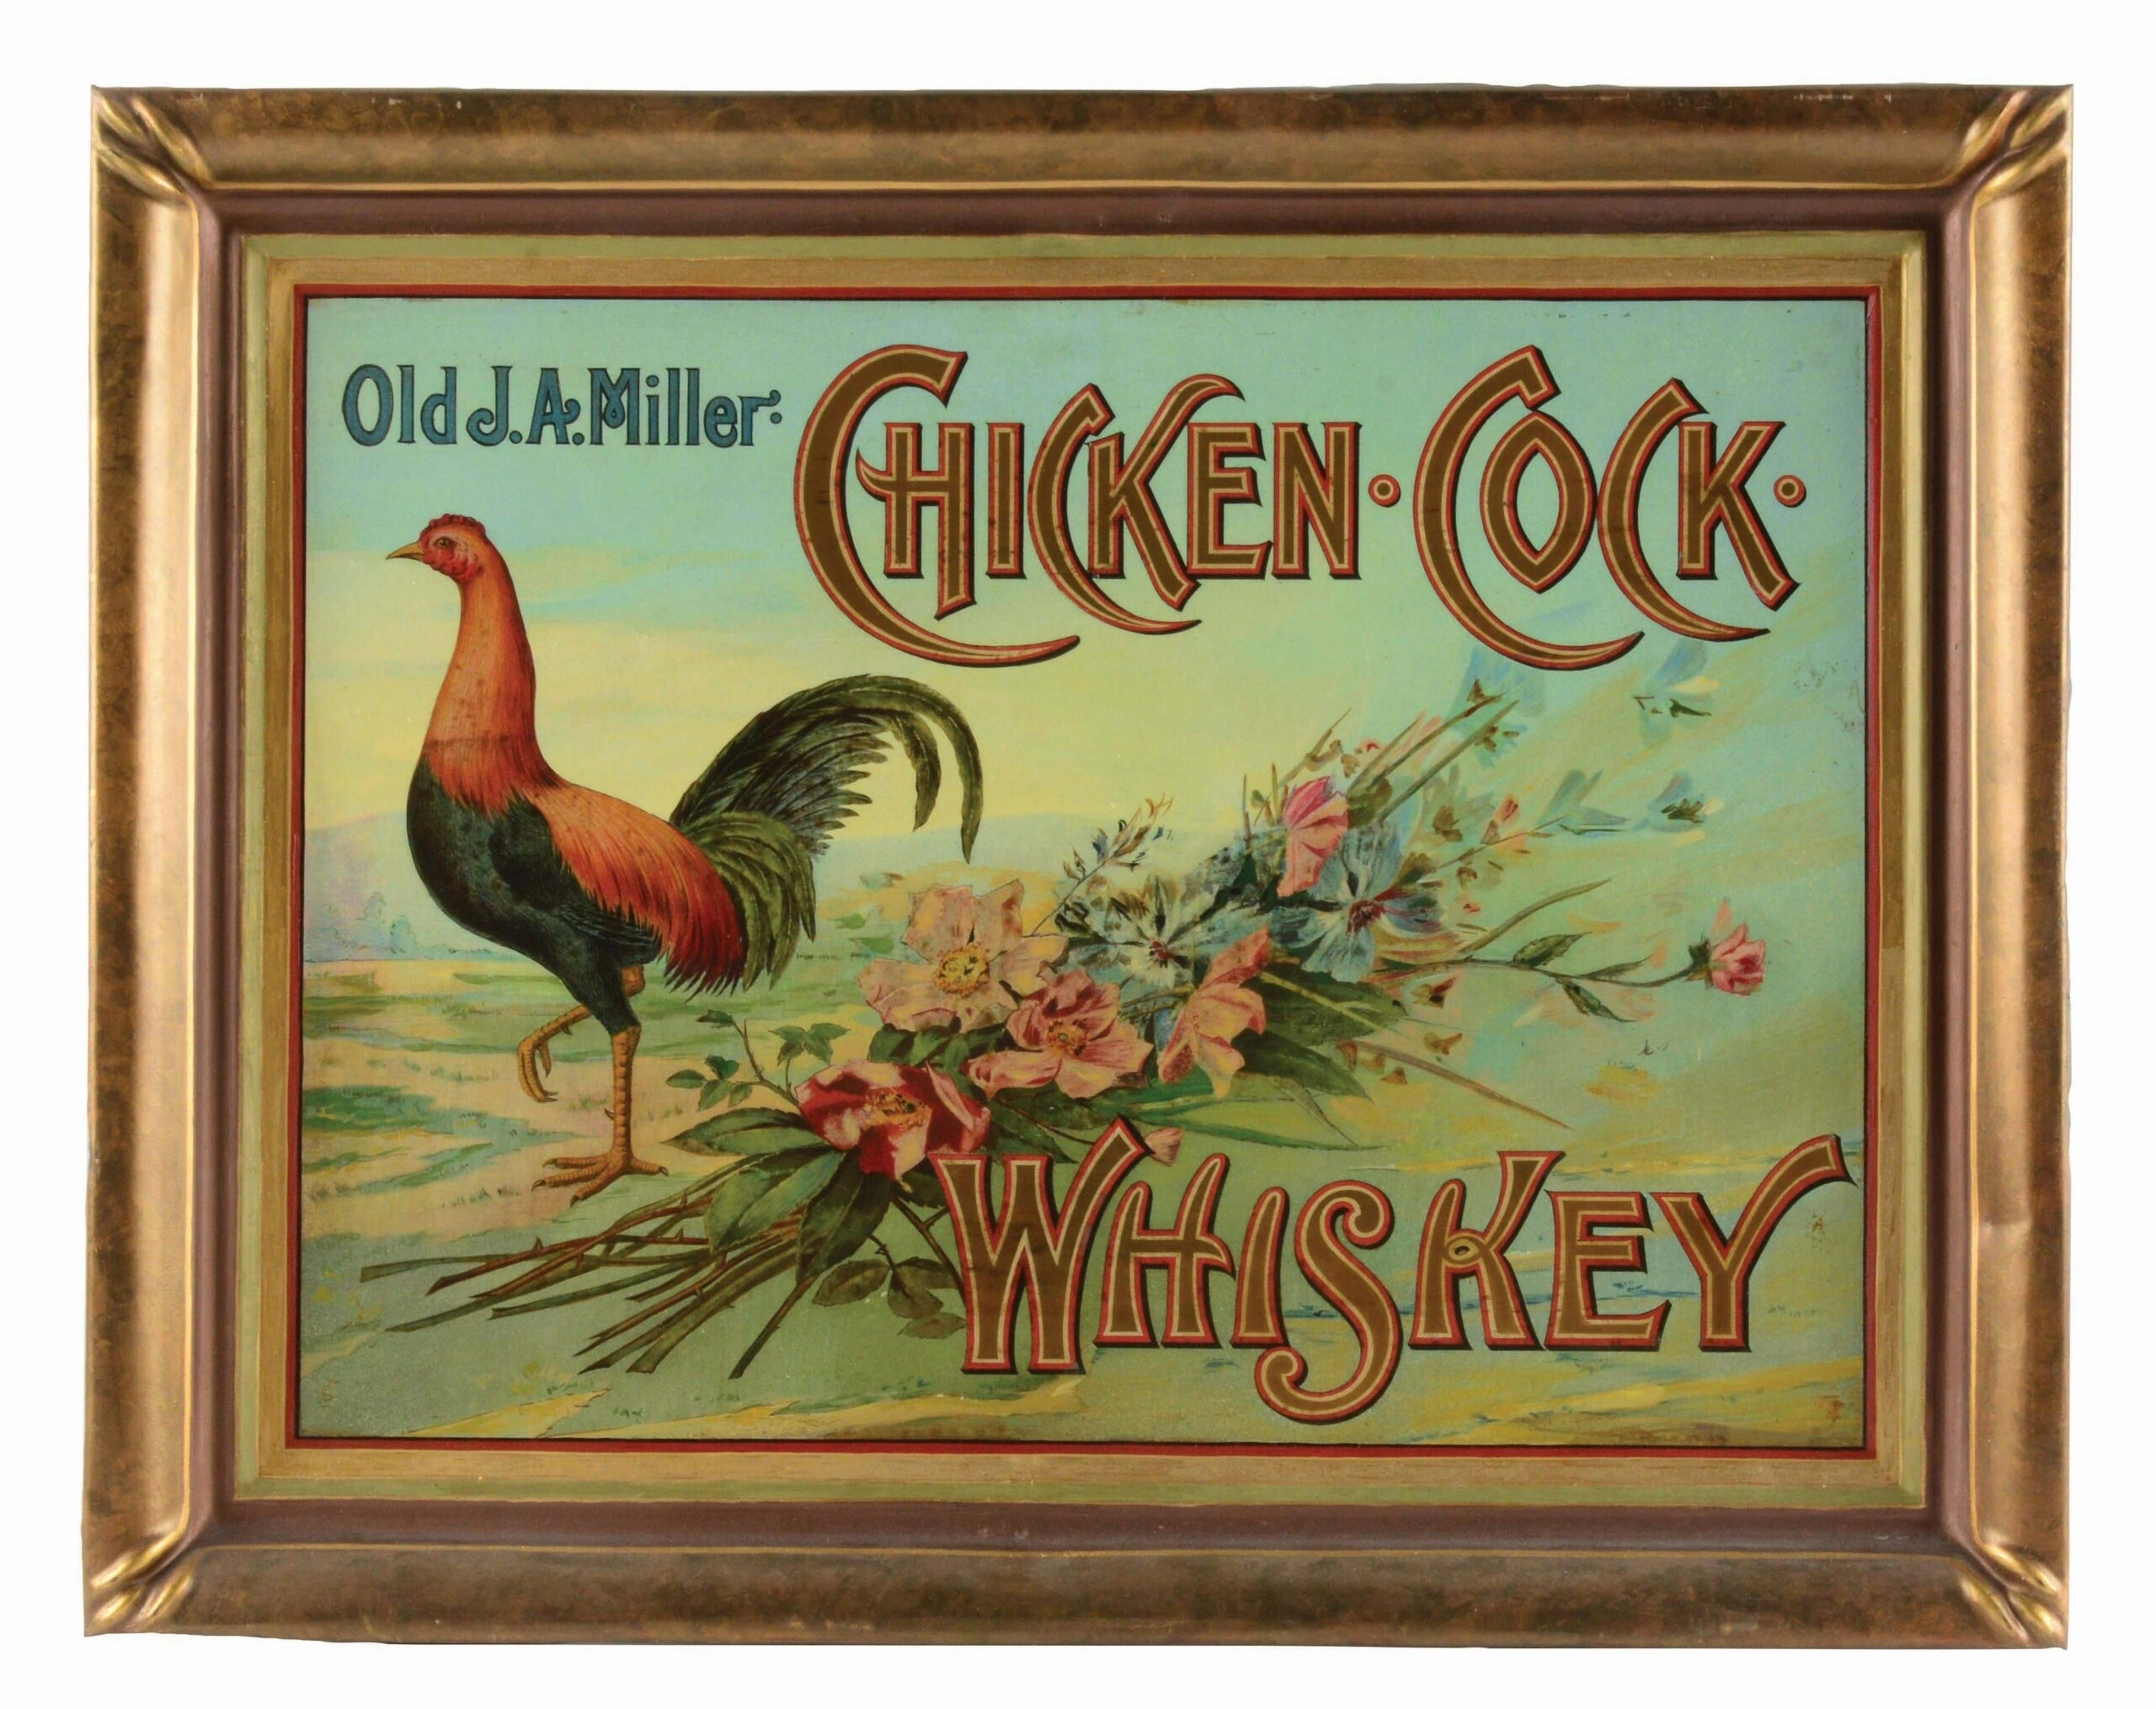 Old J.A. Miller Chicken Cock Self Framed Whiskey Sign, Louisville, Ky. Ca 1900